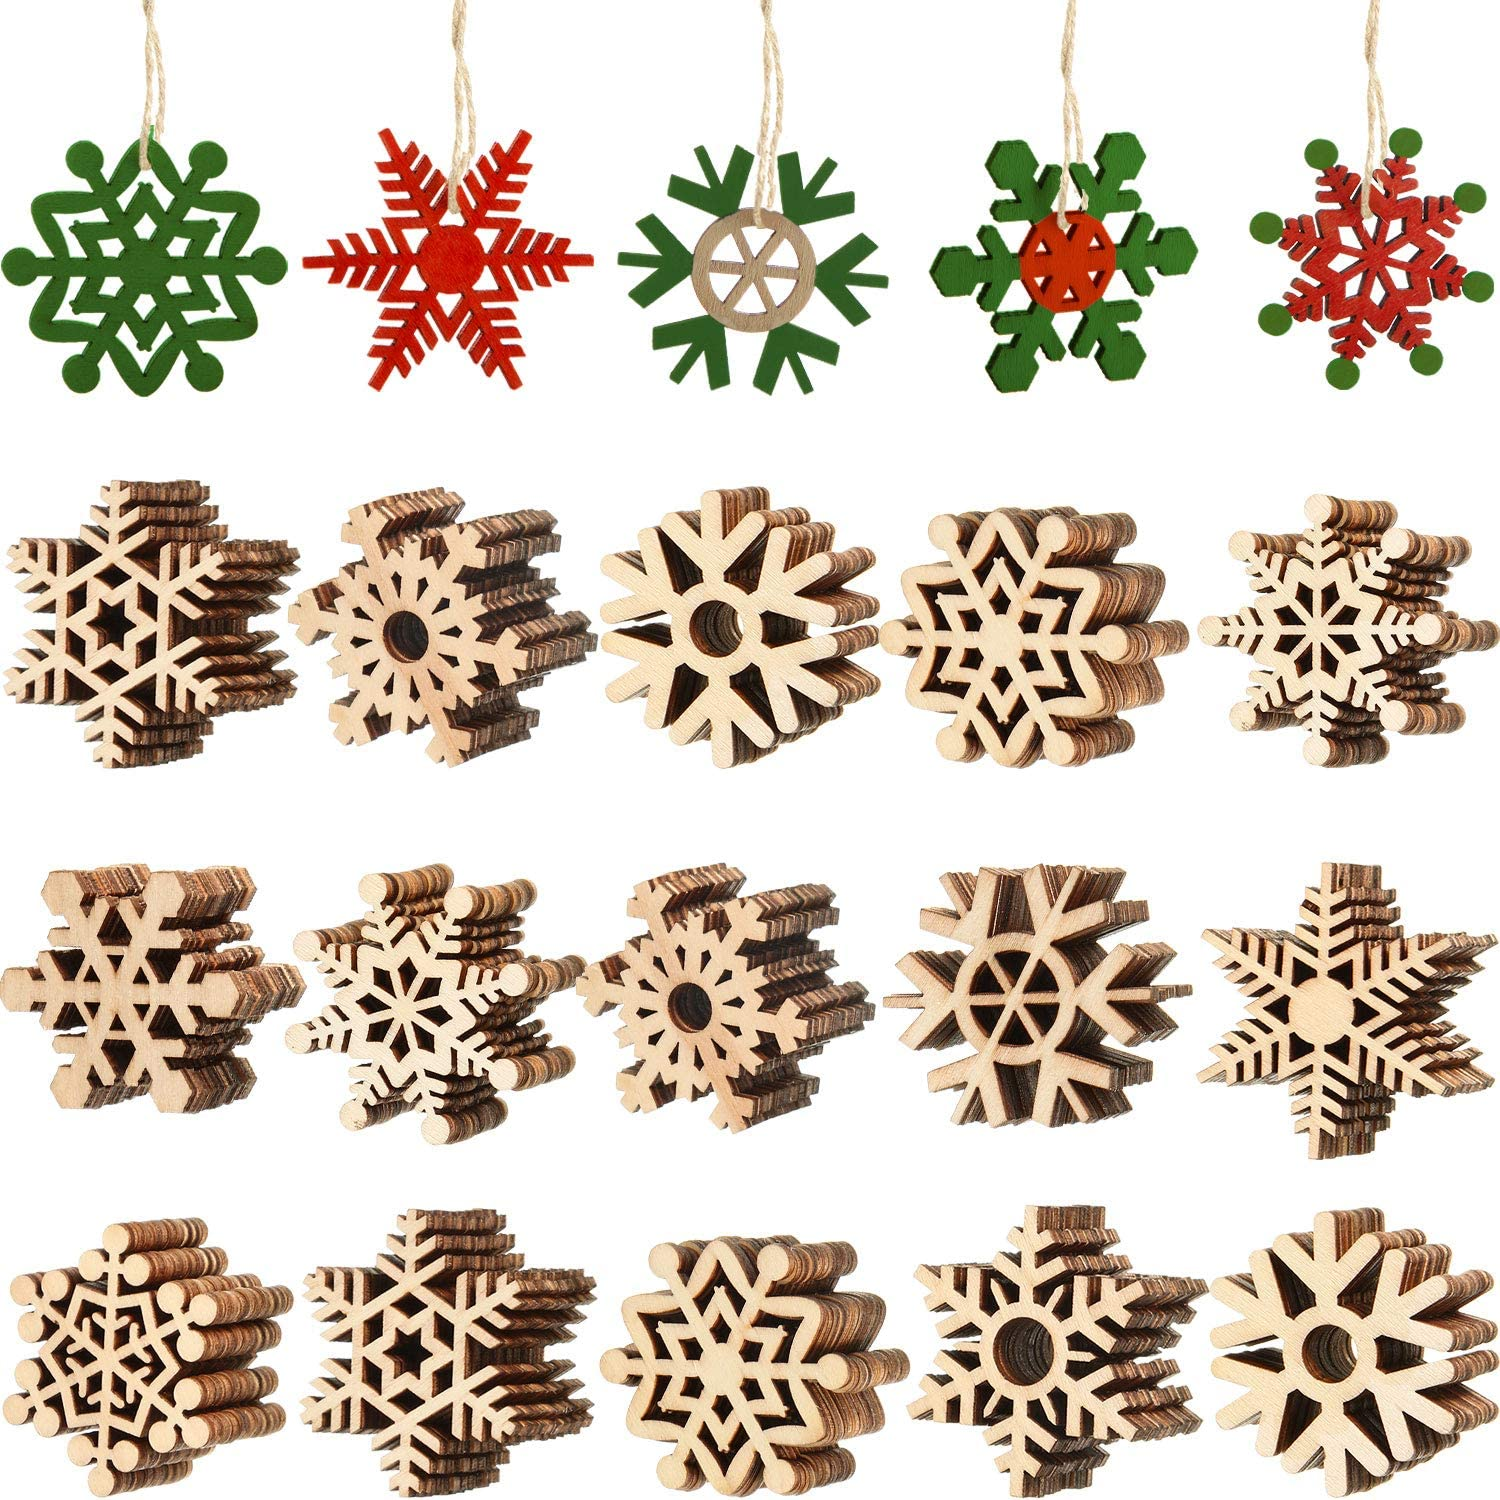 Blulu 100 Pieces Christmas Wooden Snowflake Unfinished Wooden Snowflake Cutouts Hollowed Snowflakes Embellishments Christmas Tree Hanging Ornaments with Cord for Christmas Decoration Craft (2 Inches)